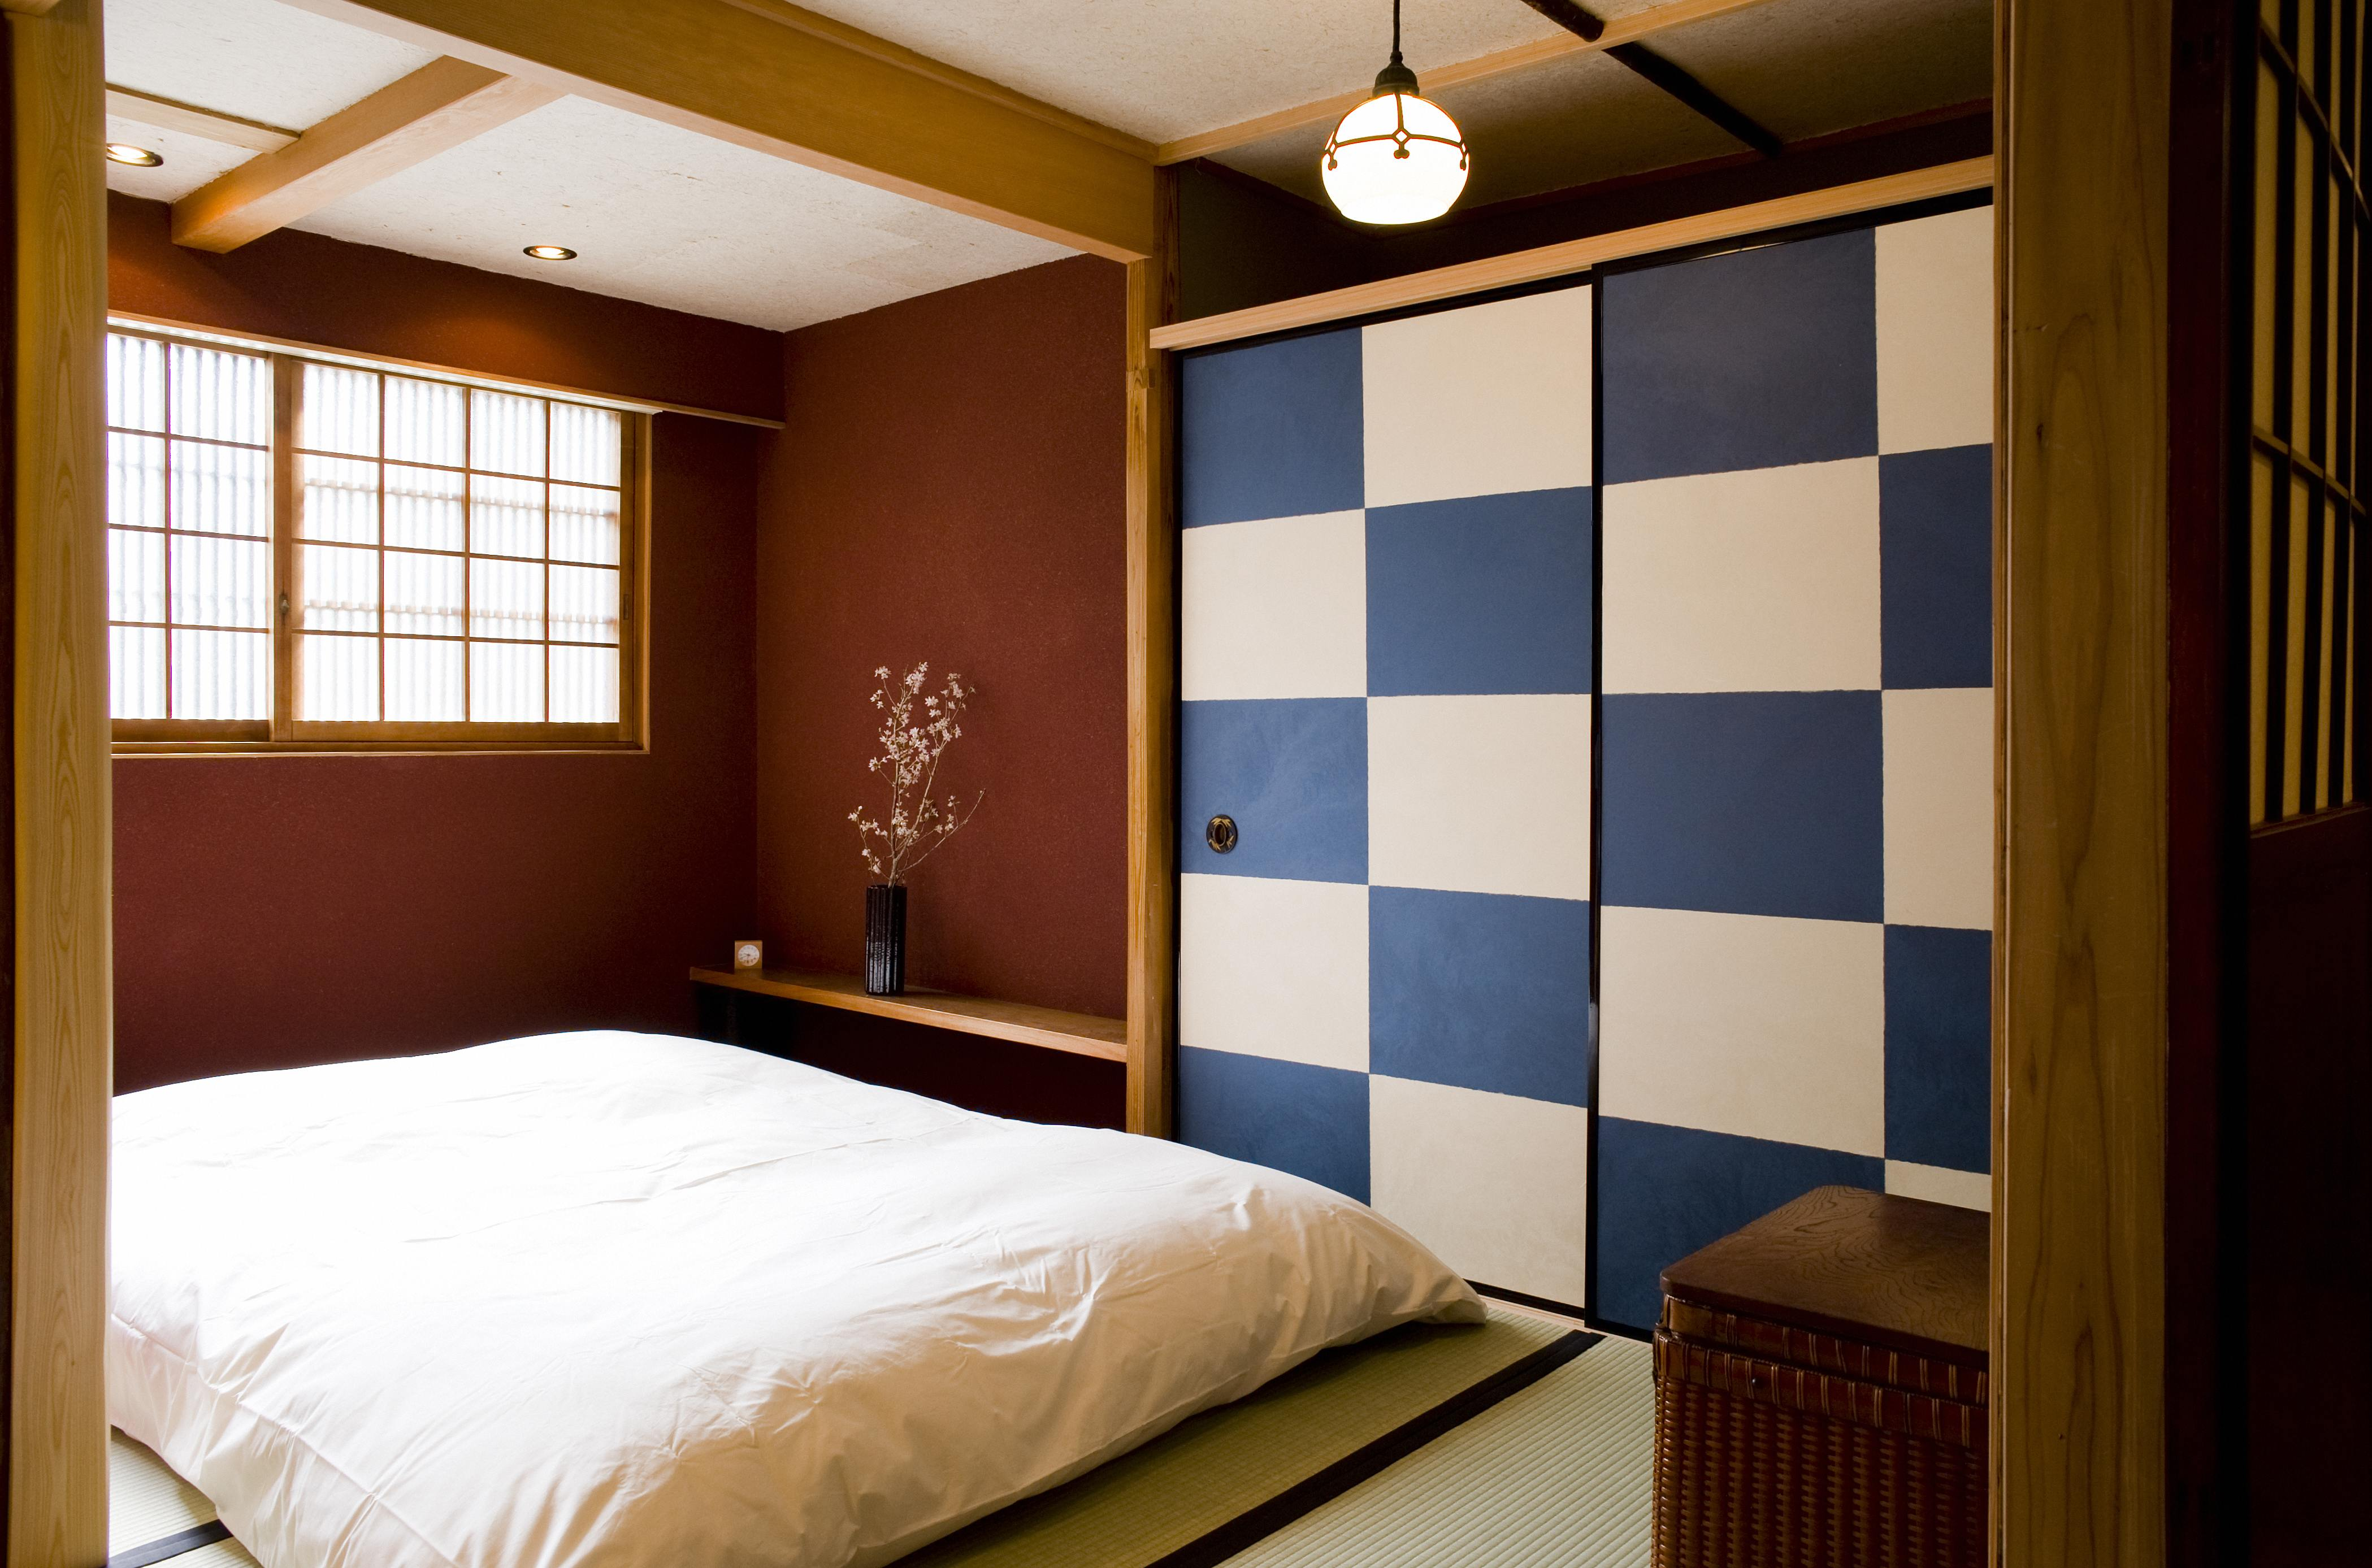 Traditional japanese house bedroom - Previous Next